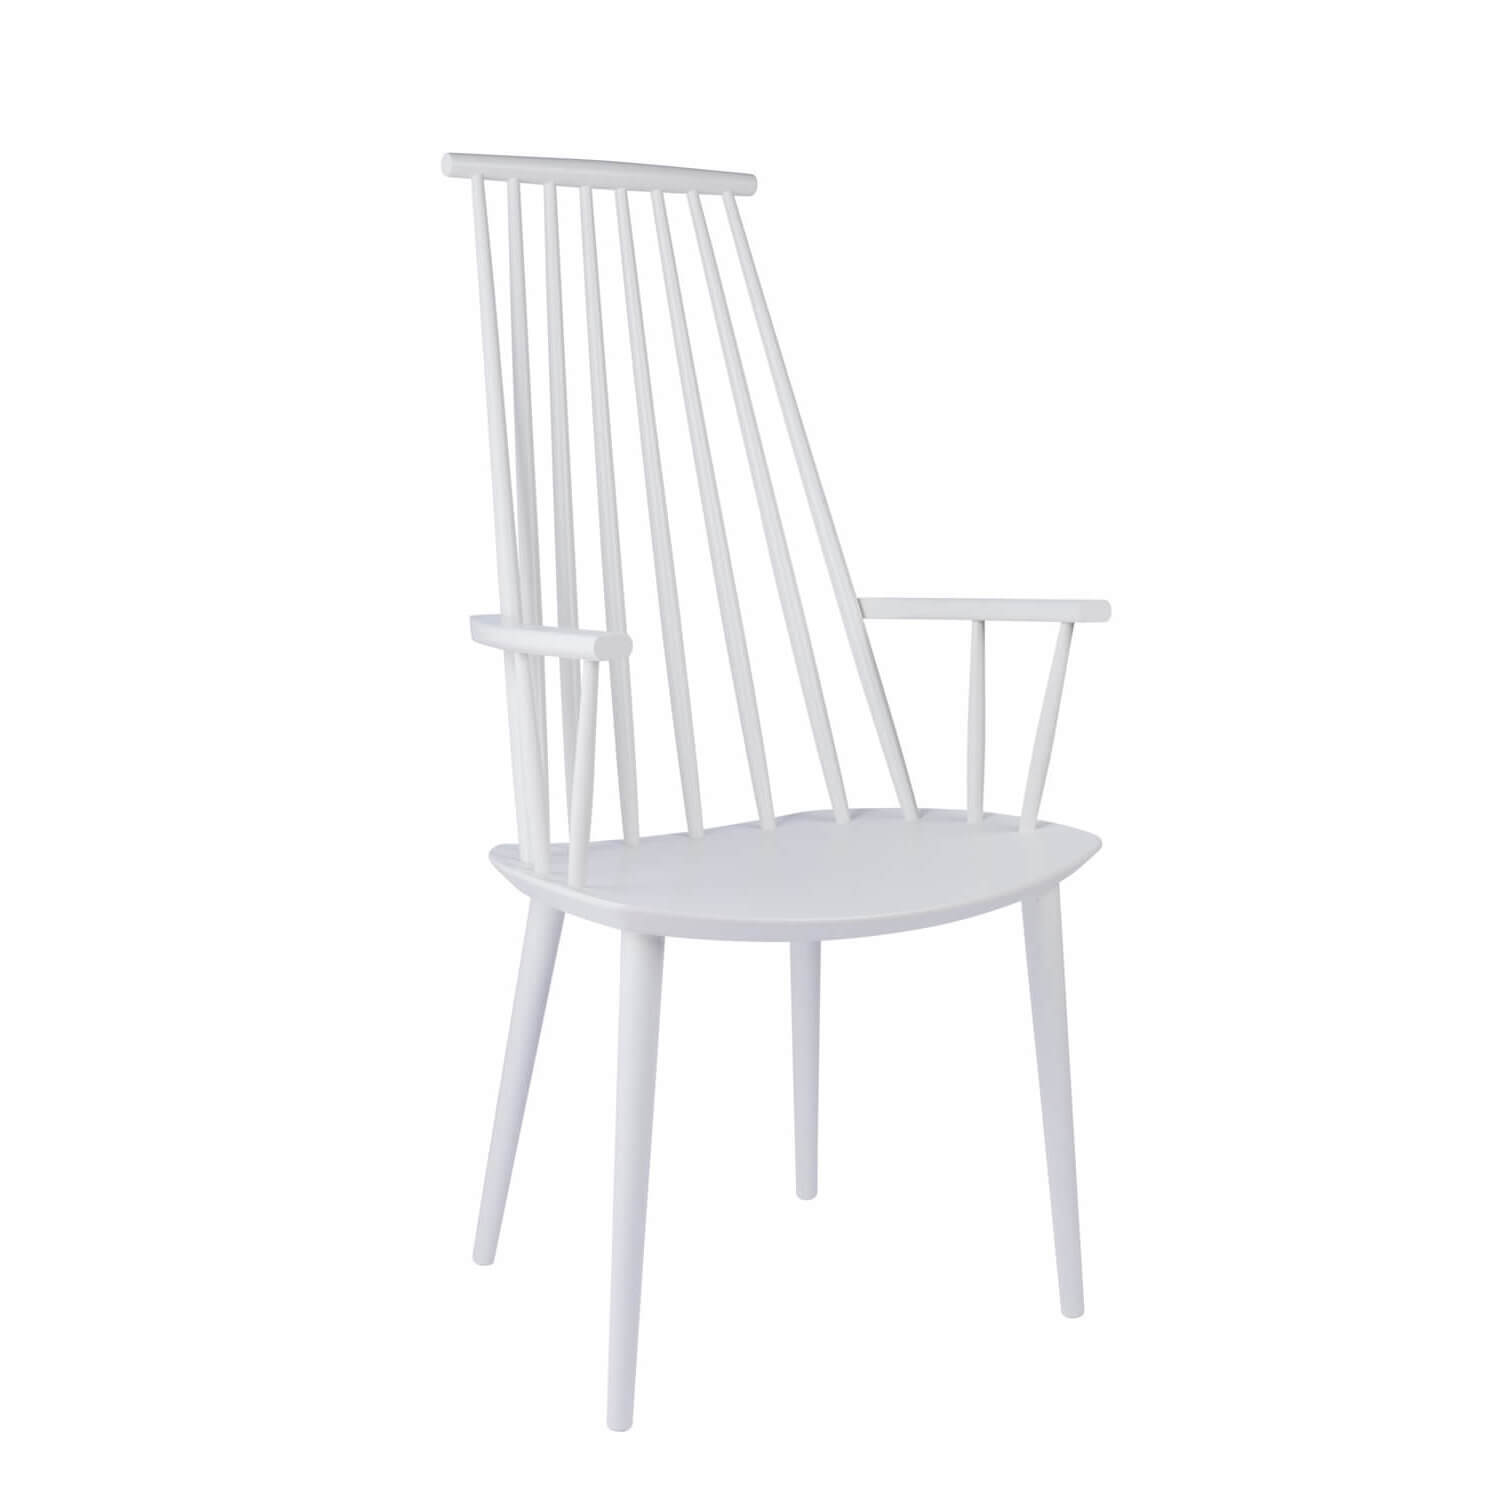 hay chair j110 white kultdesigner j ergen b kmark sitzh he 44 5cm. Black Bedroom Furniture Sets. Home Design Ideas